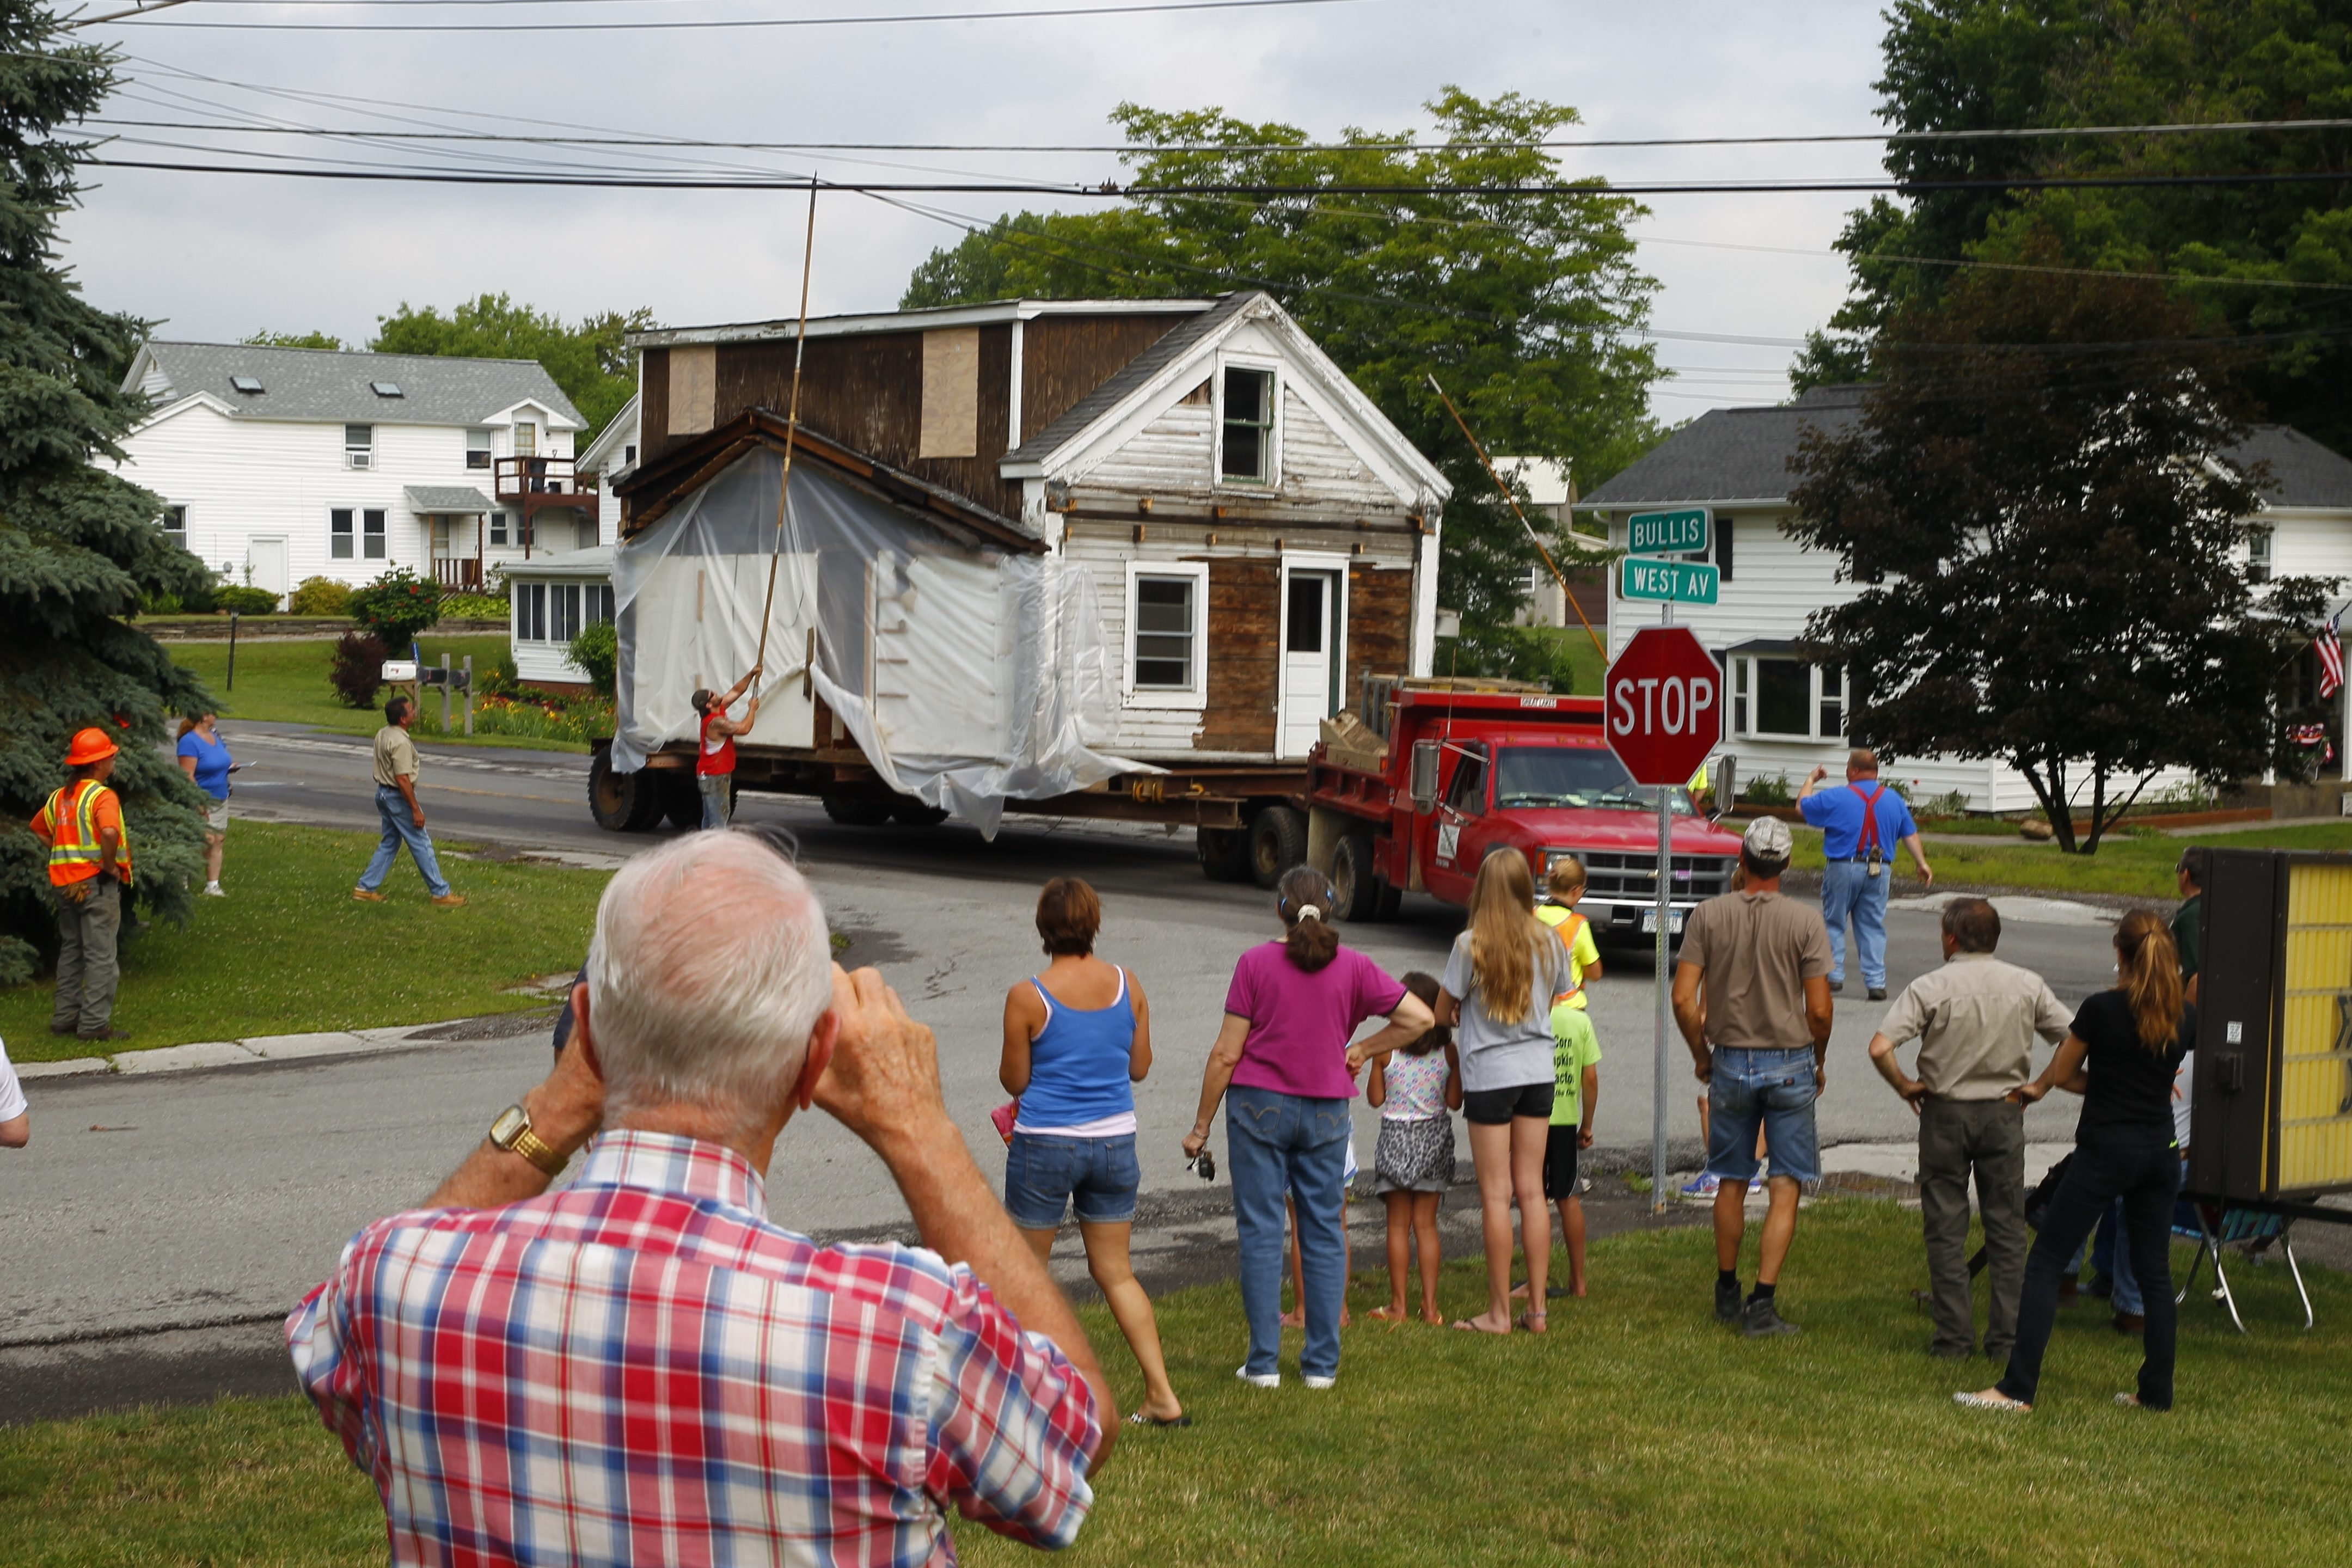 Utility lines are lifted as a log cabin is moved from Bullis Road to West Avenue in Marilla. Photo gallery at BuffaloNews.com.